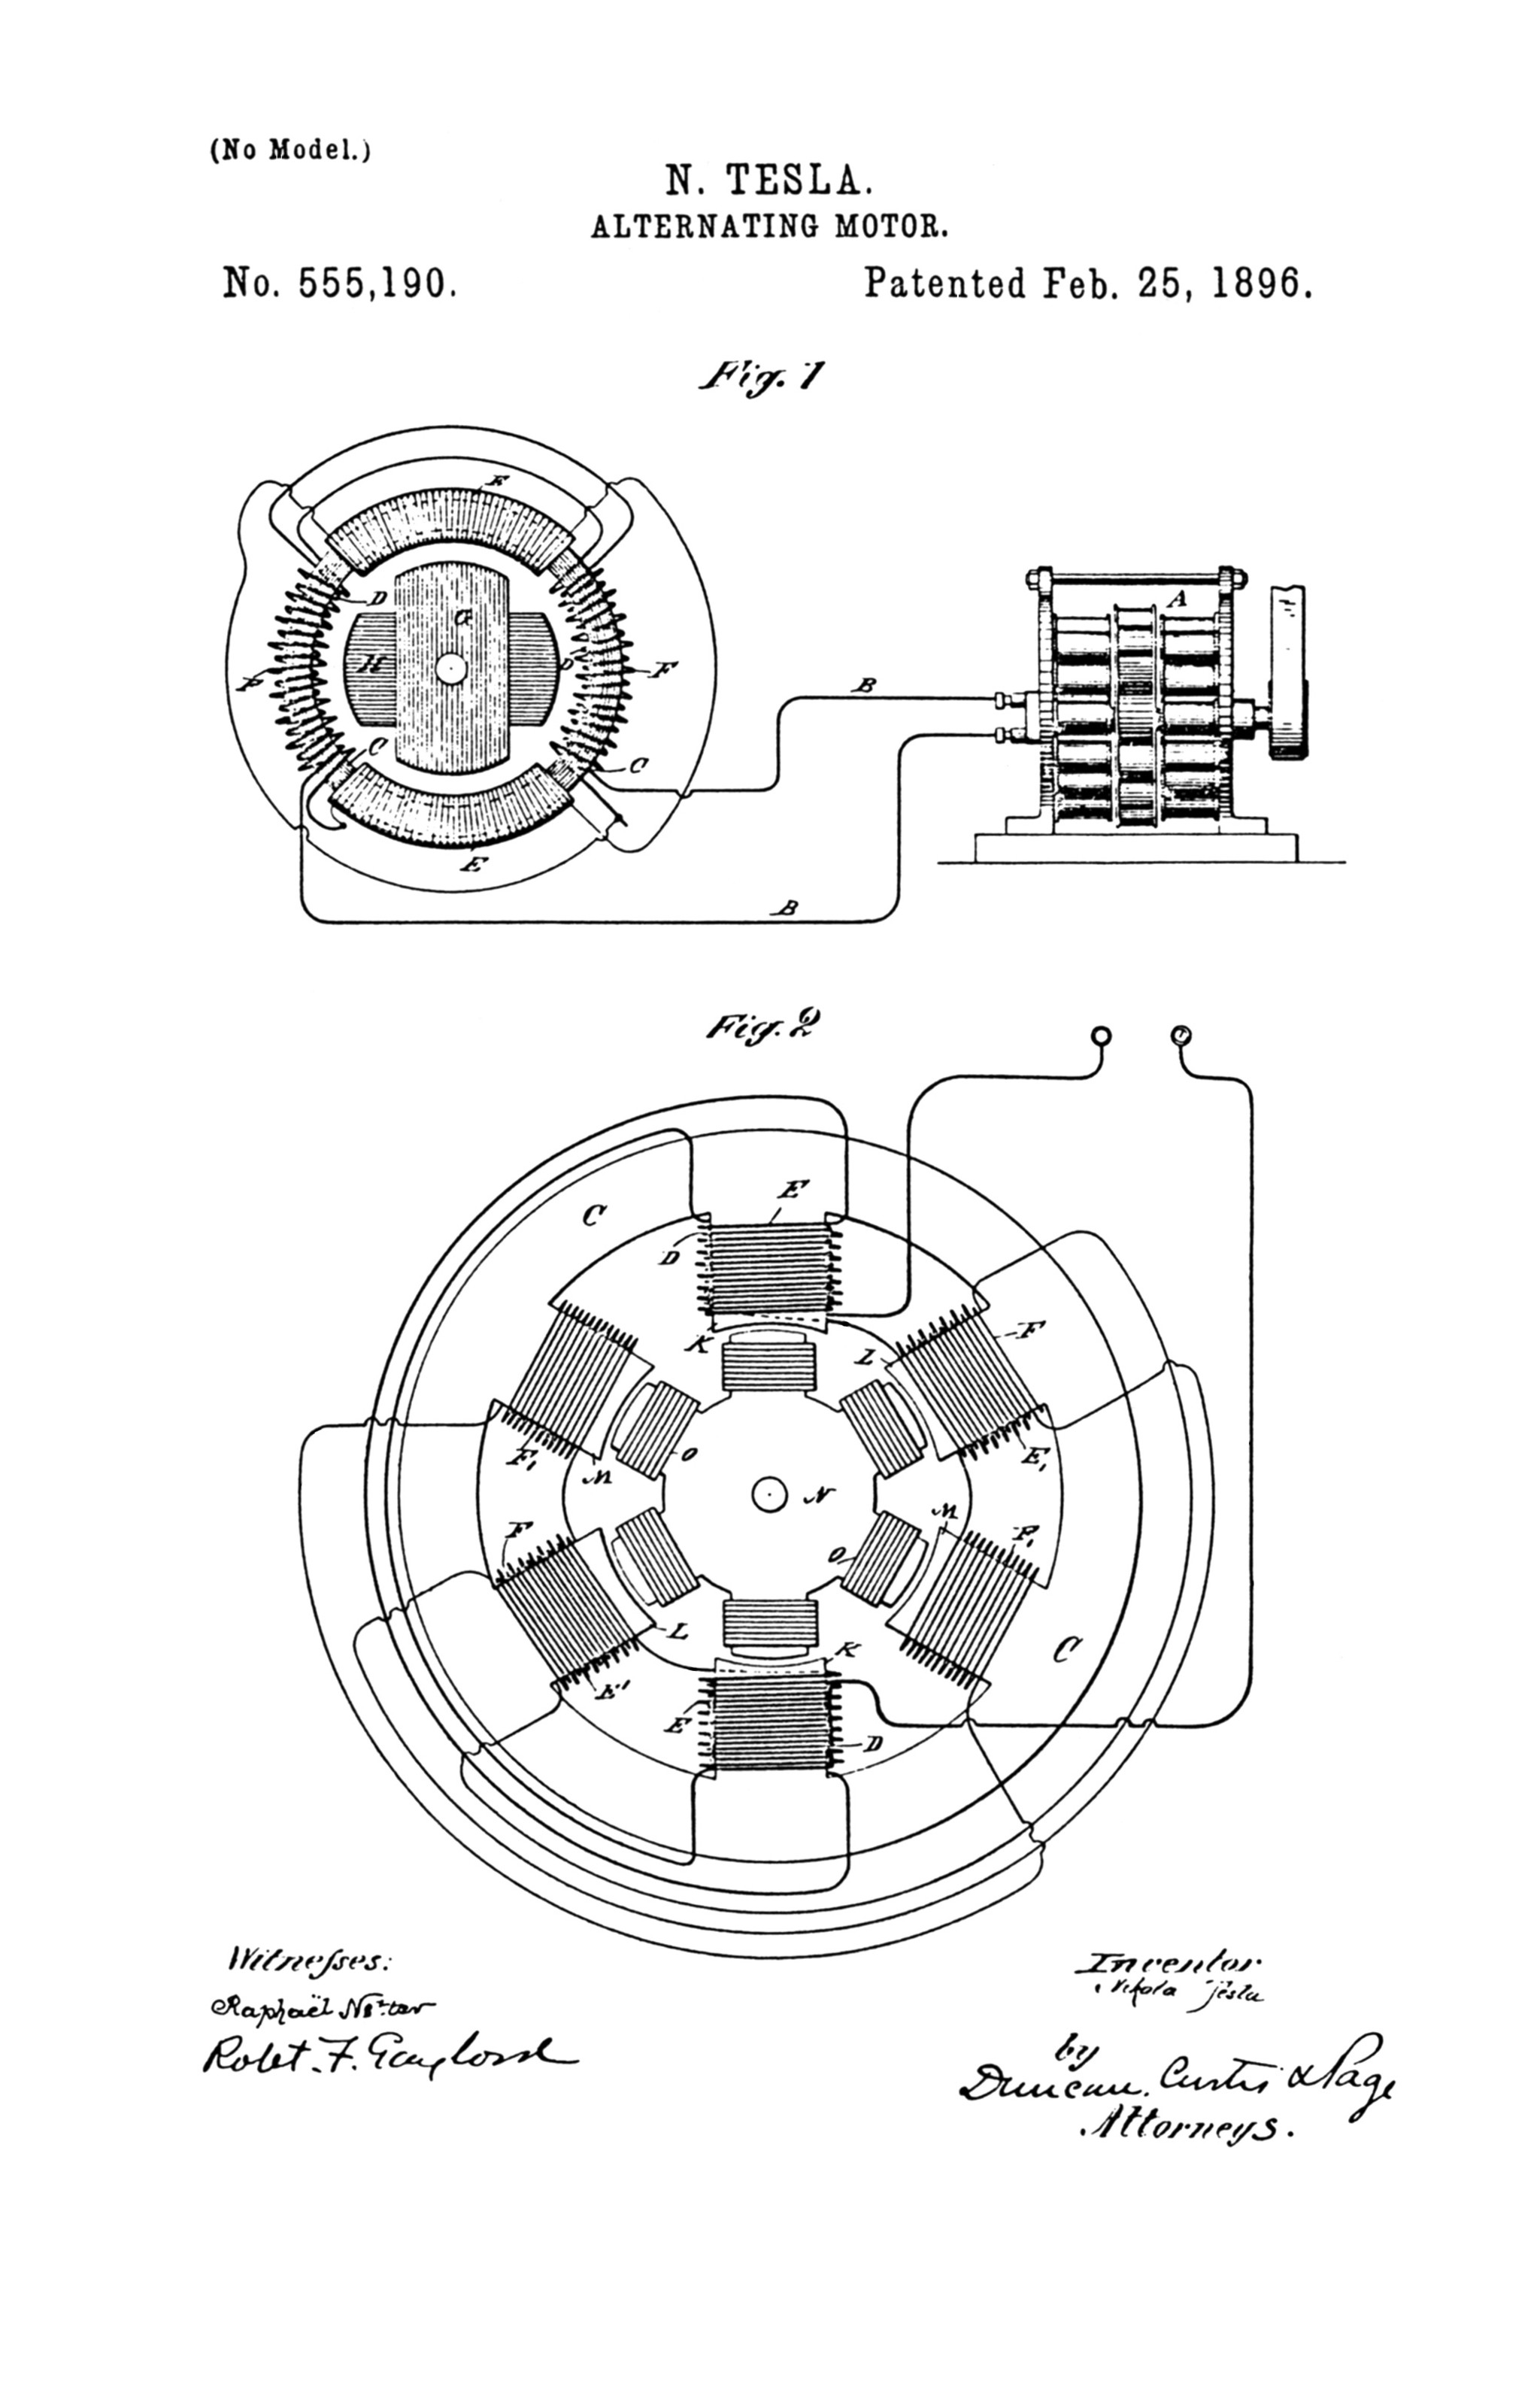 Dc Motor Drawing At Free For Personal Use Gt Control Circuits A Pwm Speed Circuit 2048x3174 Nikola Tesla Us Patent 555190